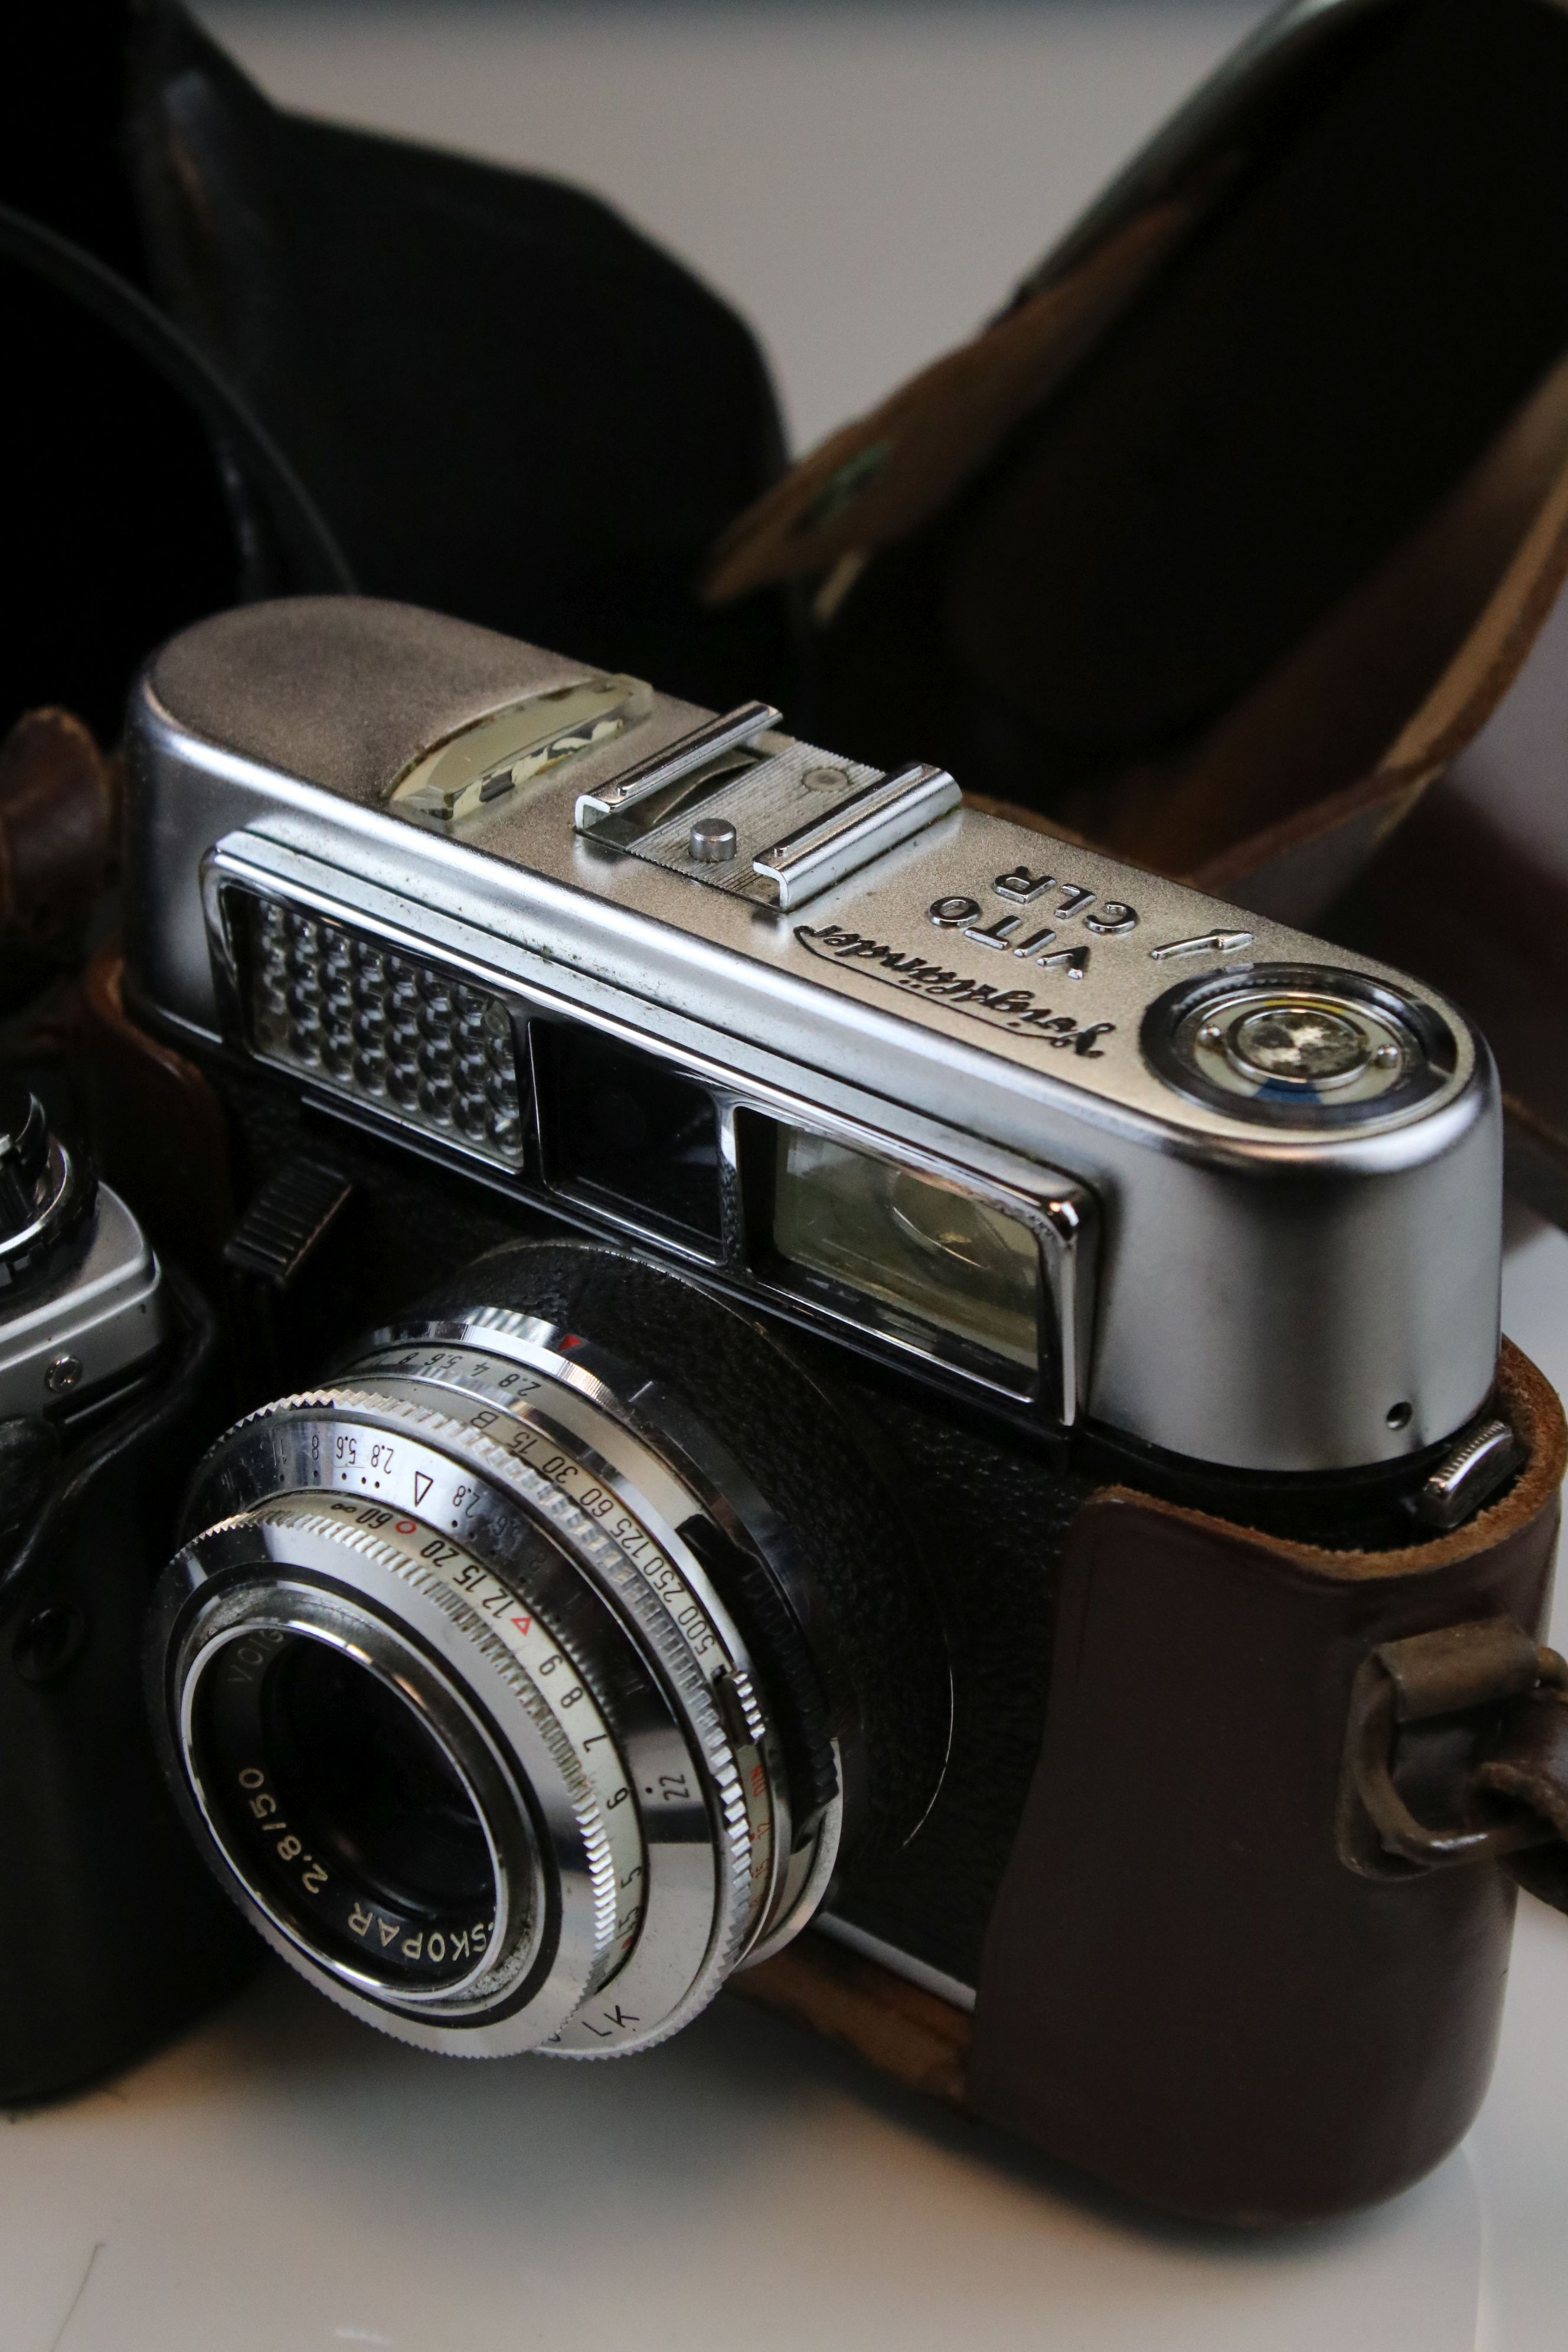 A collection of cameras and photographic equipment to include an Olympus OM10 35mm SLR camera. - Image 2 of 6